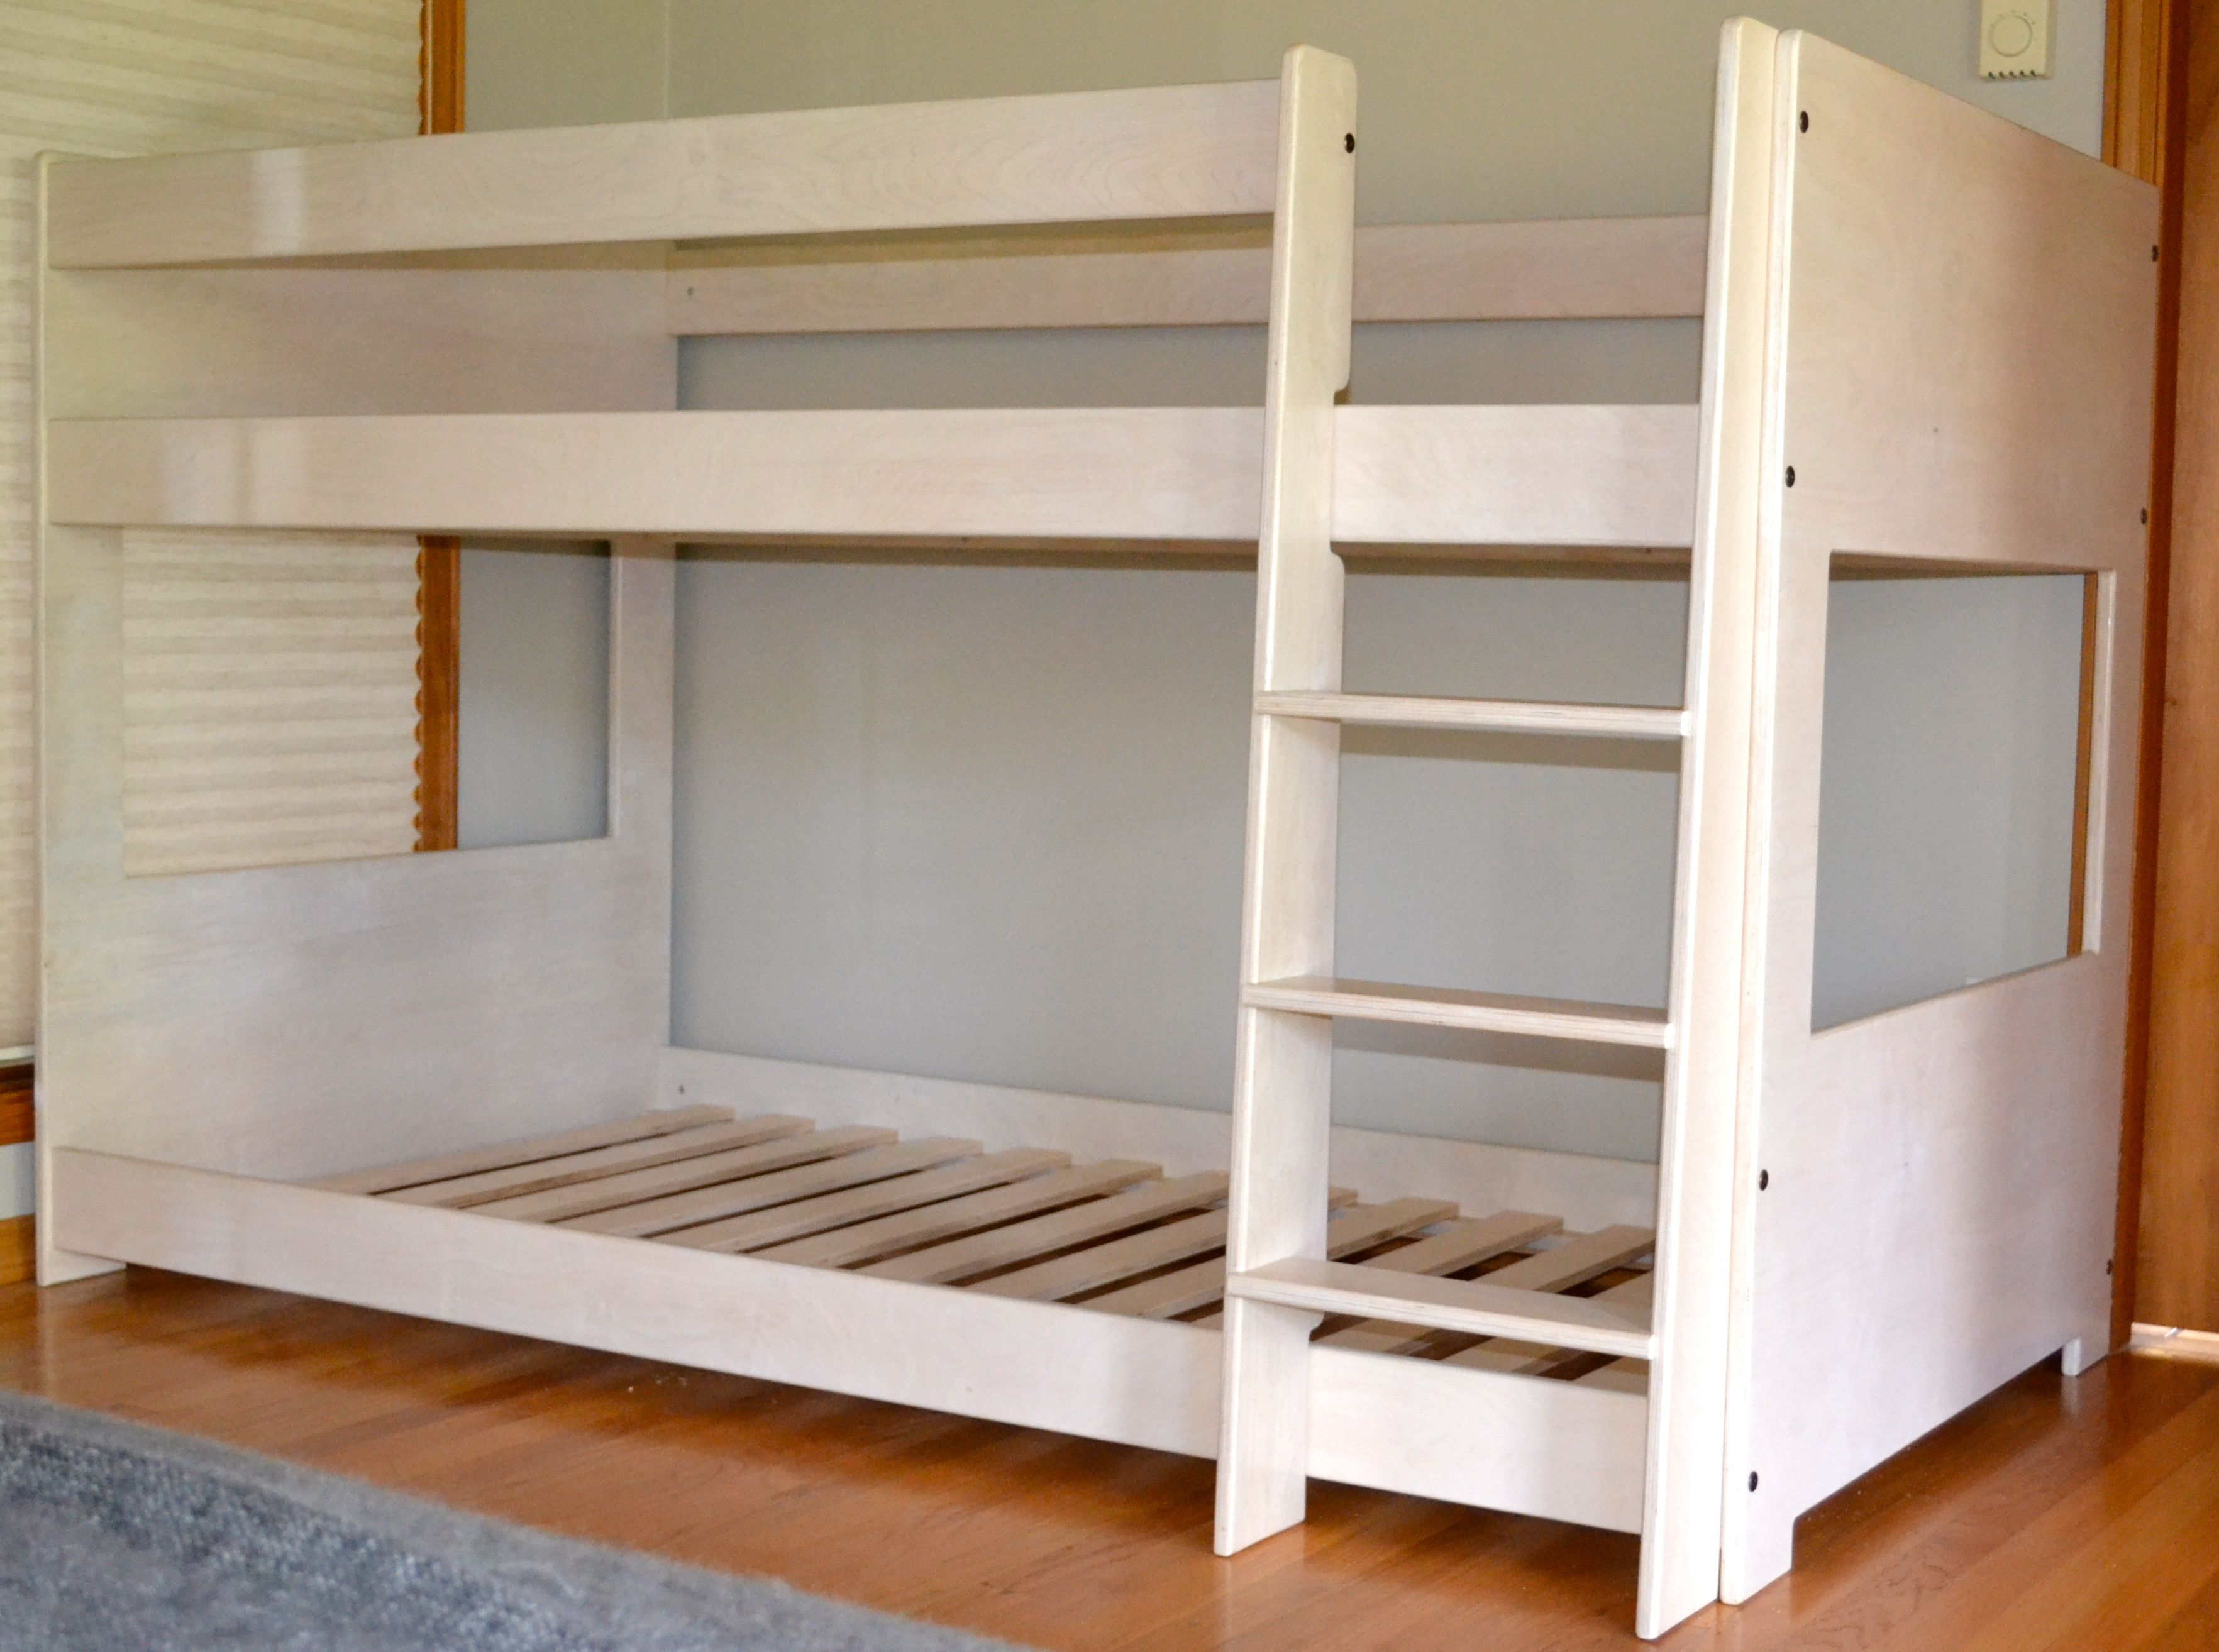 Bunk Beds With A Super Low Height Of 48 To Top Rail Comfortable For The Children And Parents Made From Birch Baltic Plywood And A Bunk Beds Bunker Bed Bunks